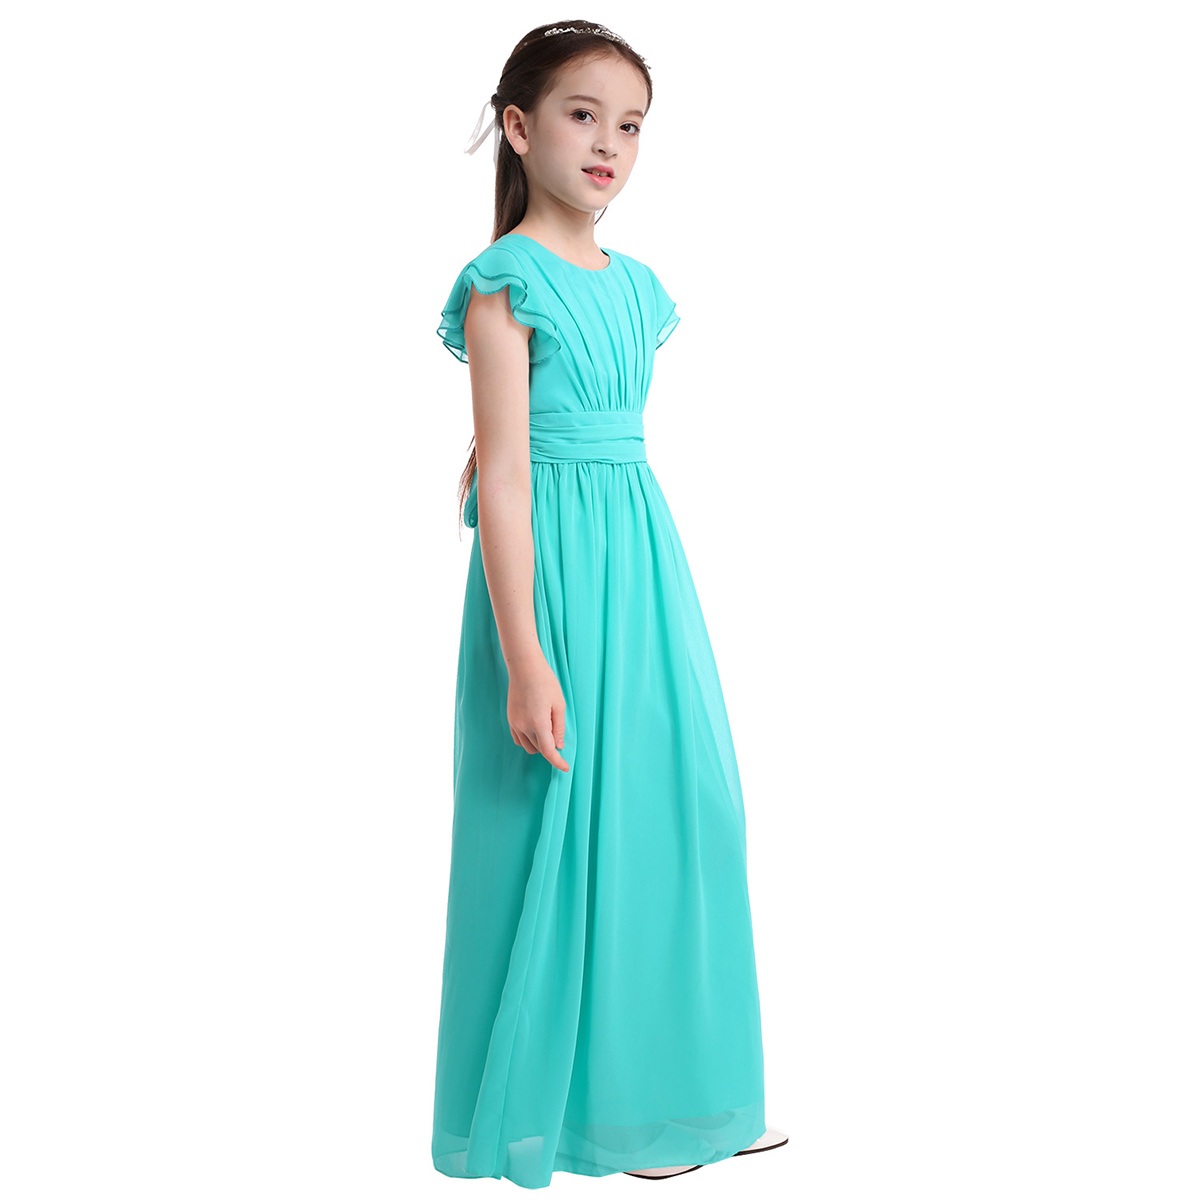 Image 3 - iiniim Girls Flower Tutu Dress Flutter Sleeves Princess Dresses Bridesmaid Summer Birthday Party Dress Childrens Clothinggirls christmas dressgirl christmasbirthday party dress -